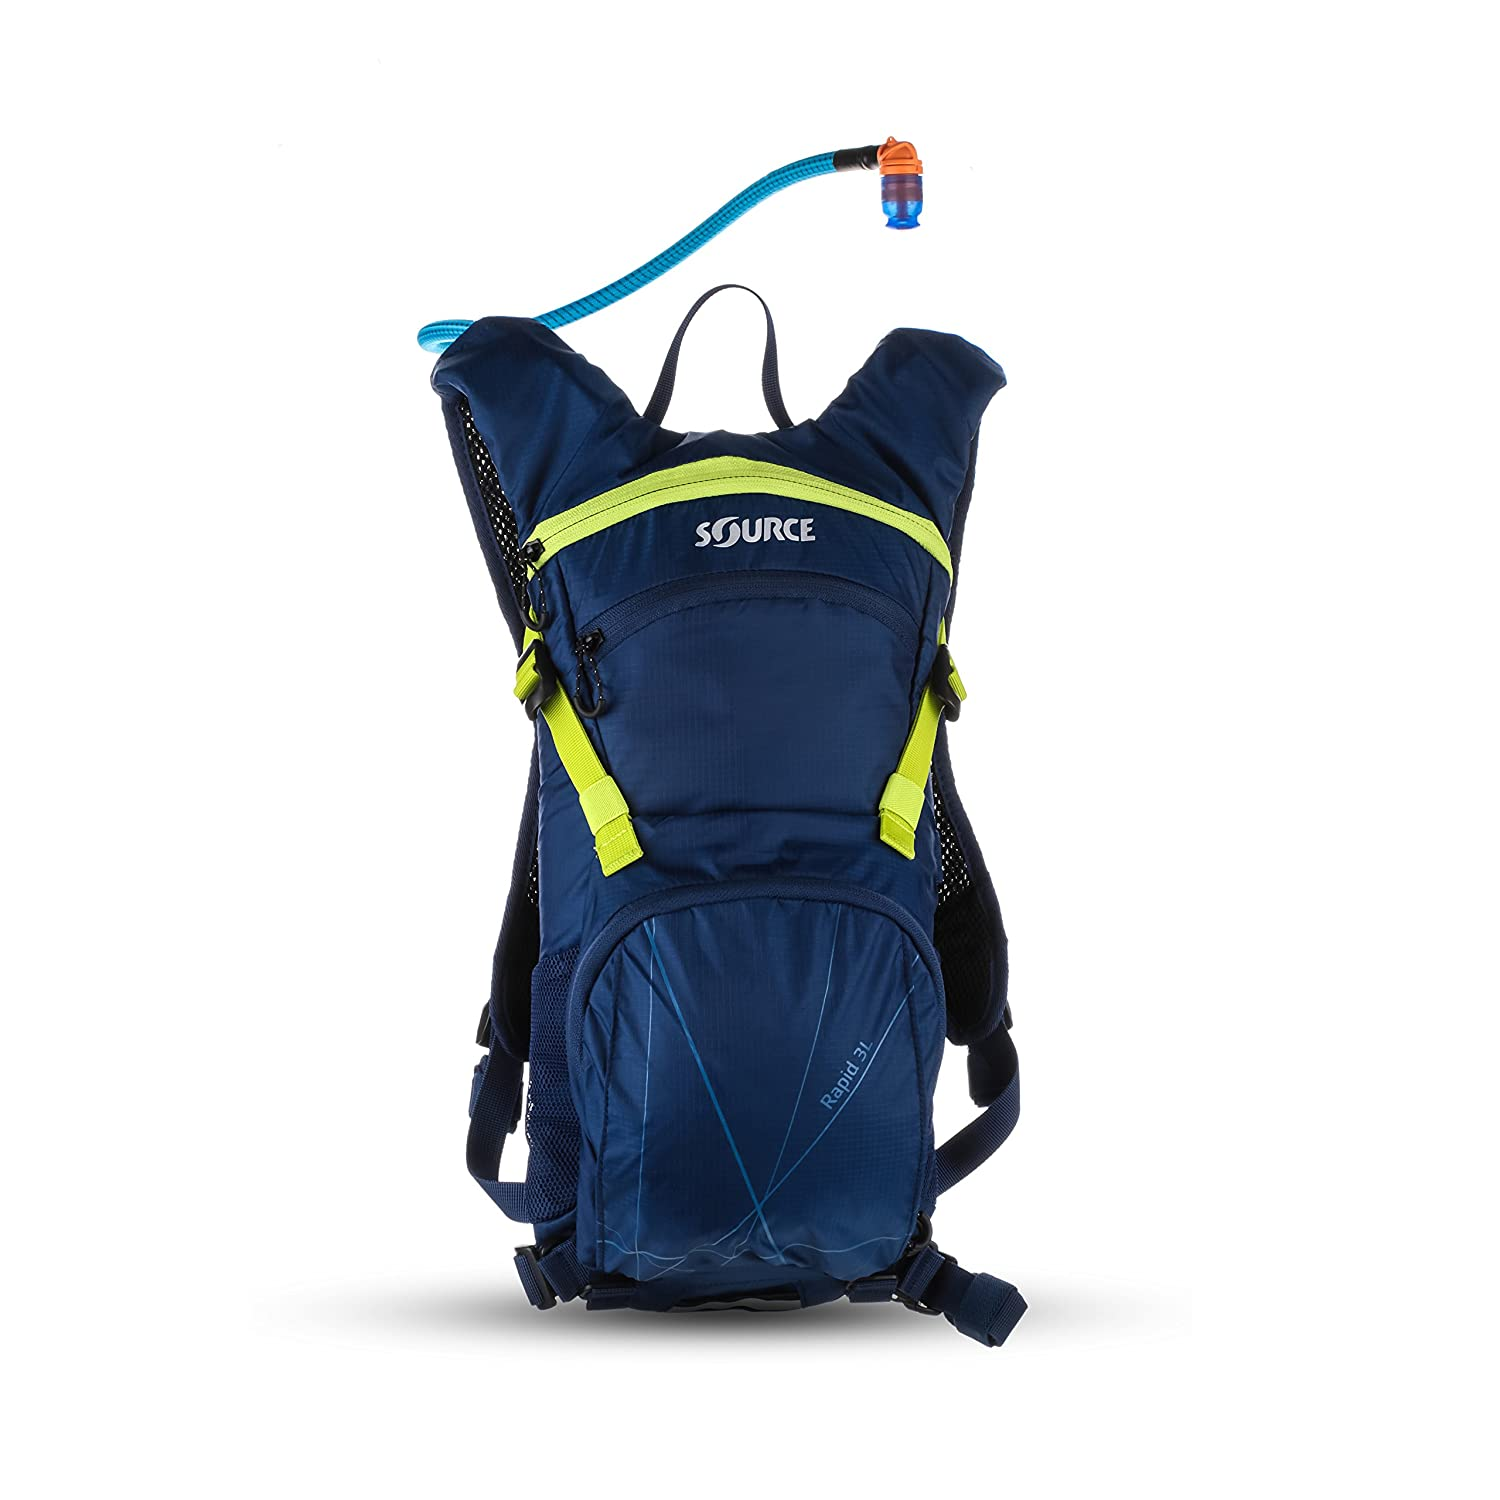 Source Outdoor Rapid Hydration System Pack with 2L Cargo Storage 2052526402-PARENT